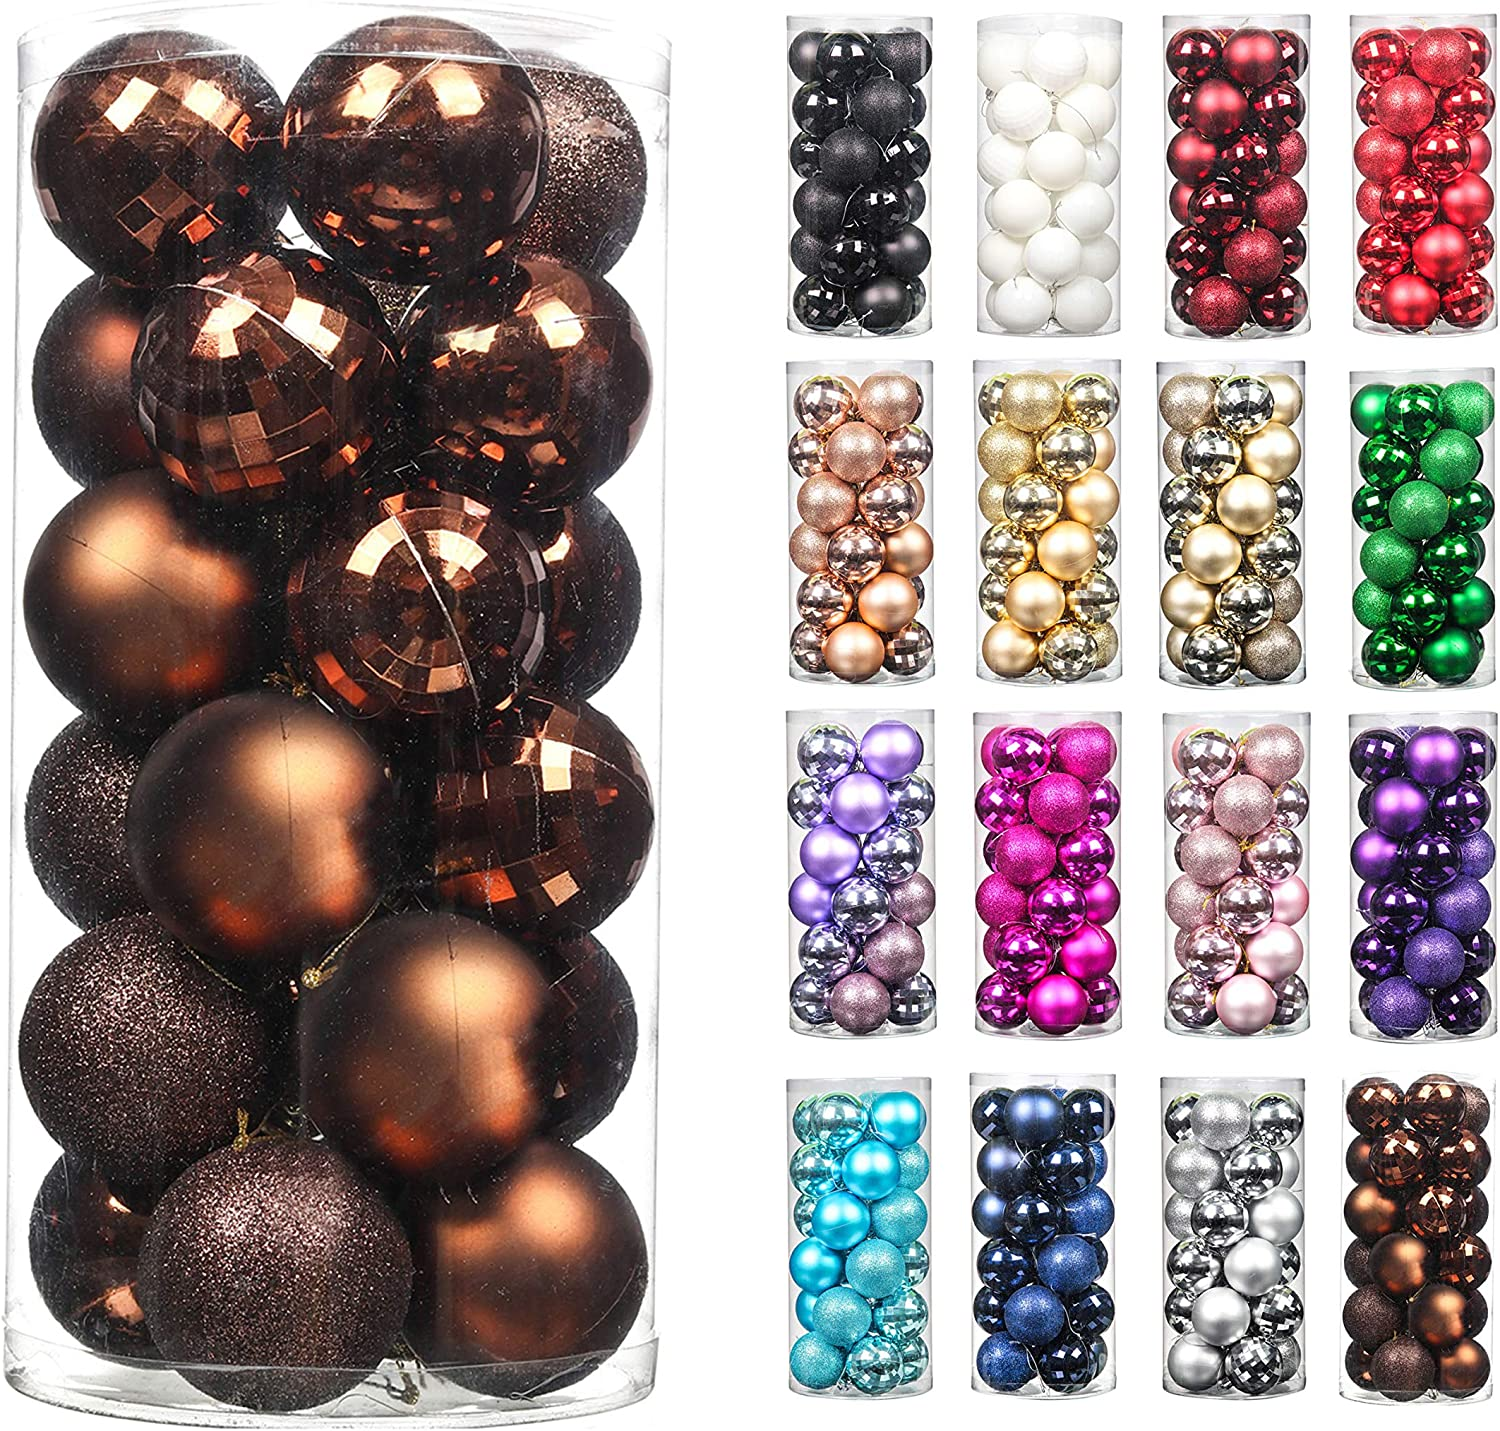 24pcs 2.36in Christmas Decoration Balls Shatterproof Color Set Ornaments Balls for Festival Wedding Home Party Decors Xmas Tree Hanging (Coffee)